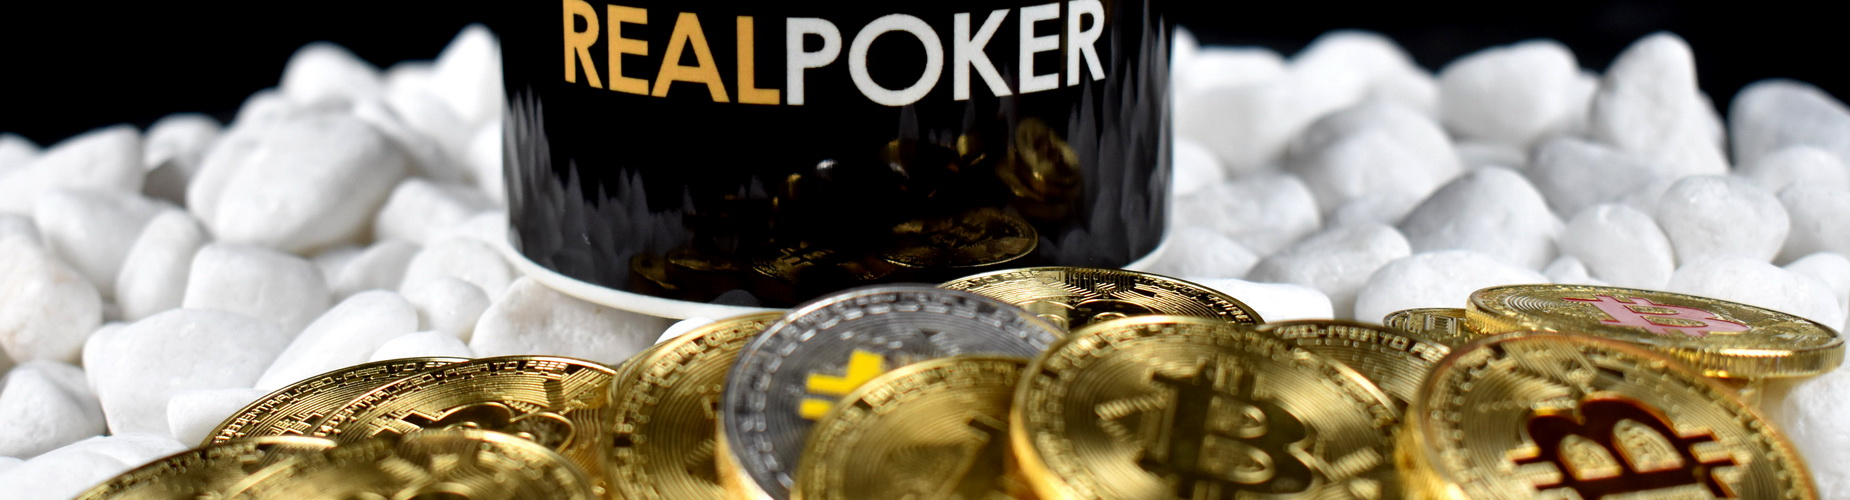 How long should you spend playing Bitcoin poker?